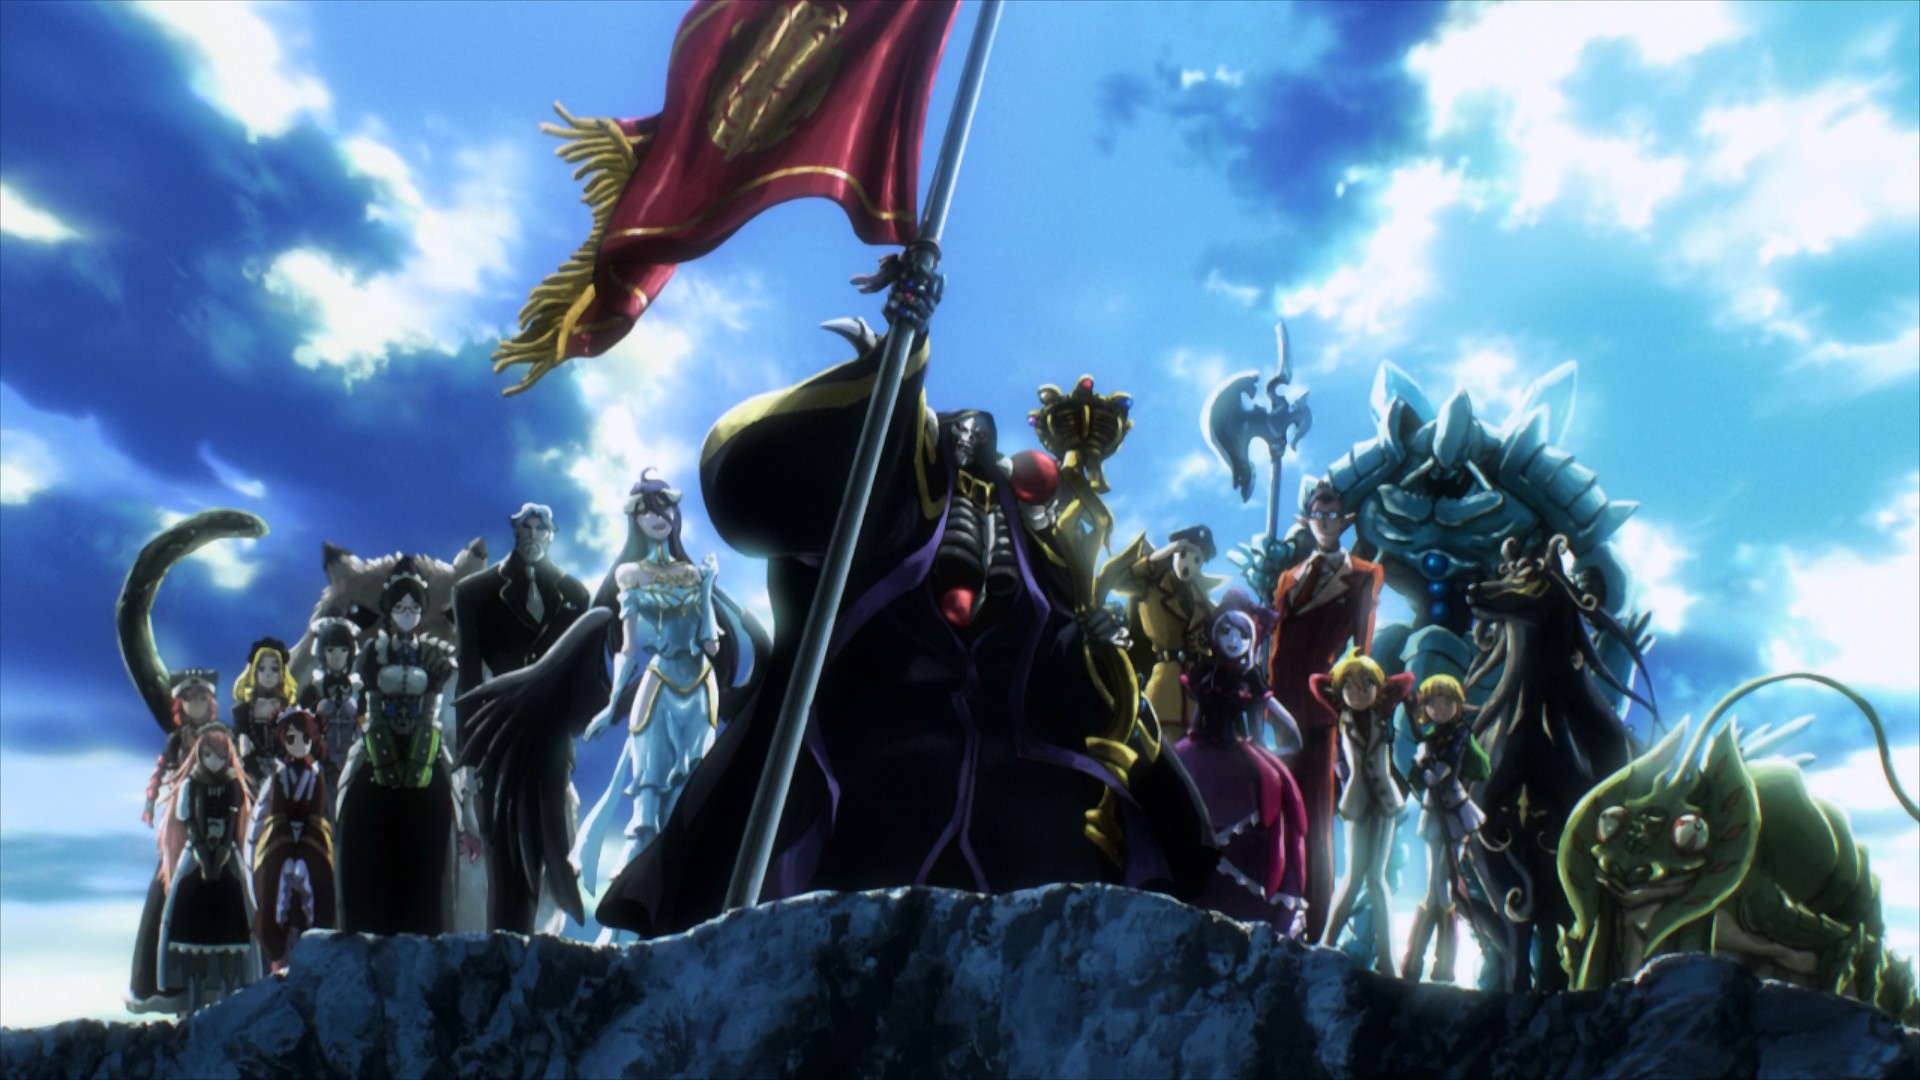 Overlord Anime Wallpaper  C B E  A Download Free Stunning